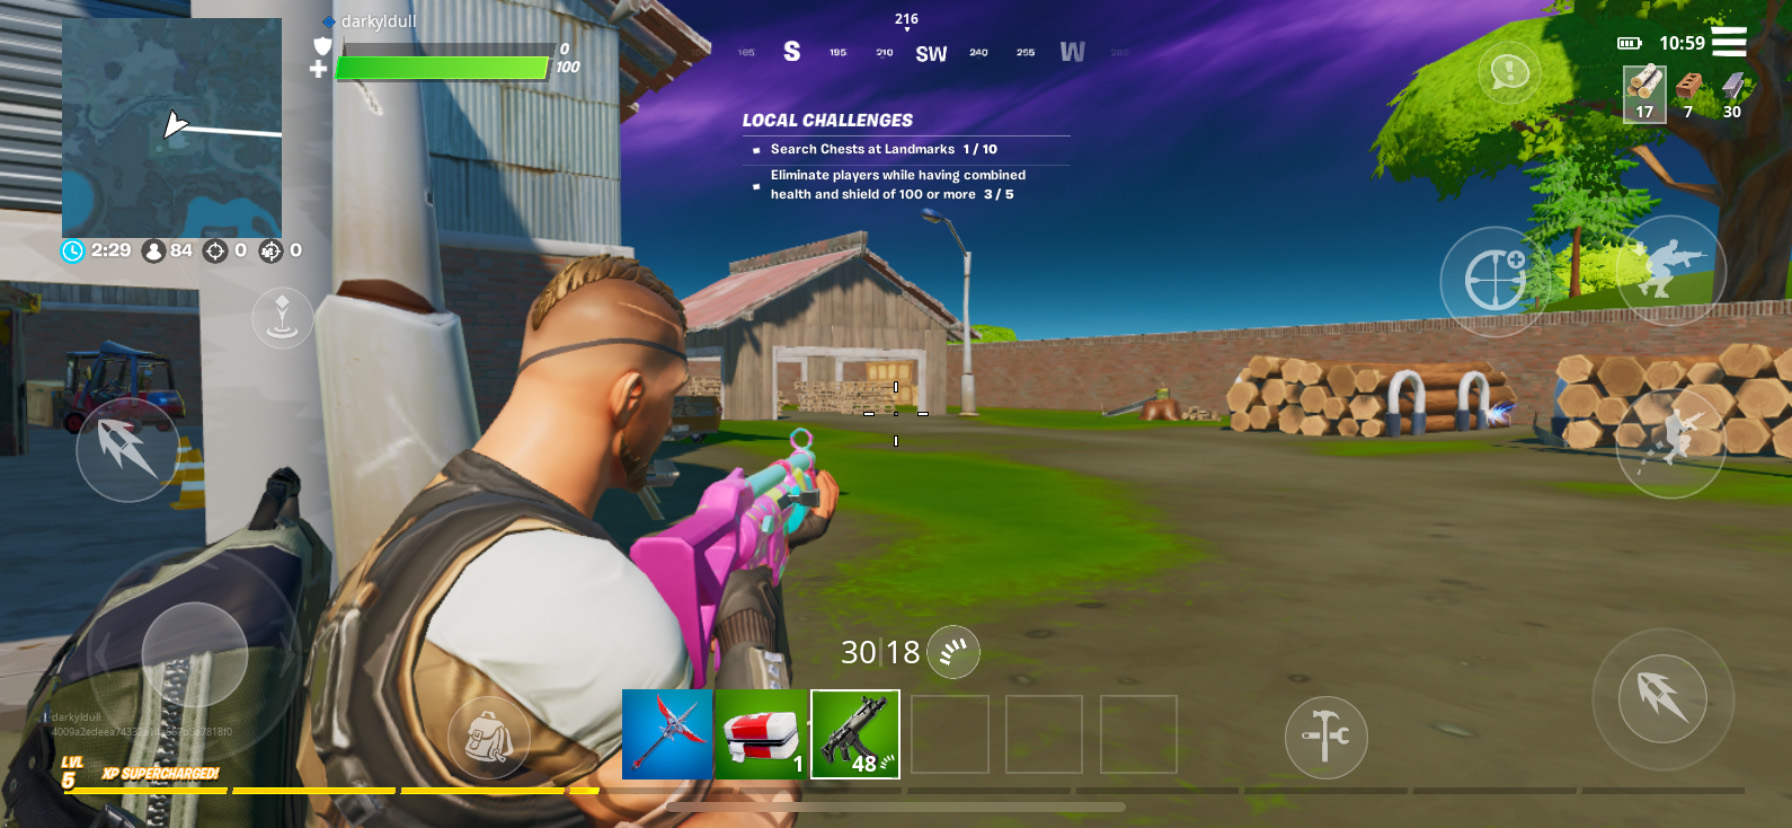 Fortnite Mobile – A Guide on the Different Weapon Types